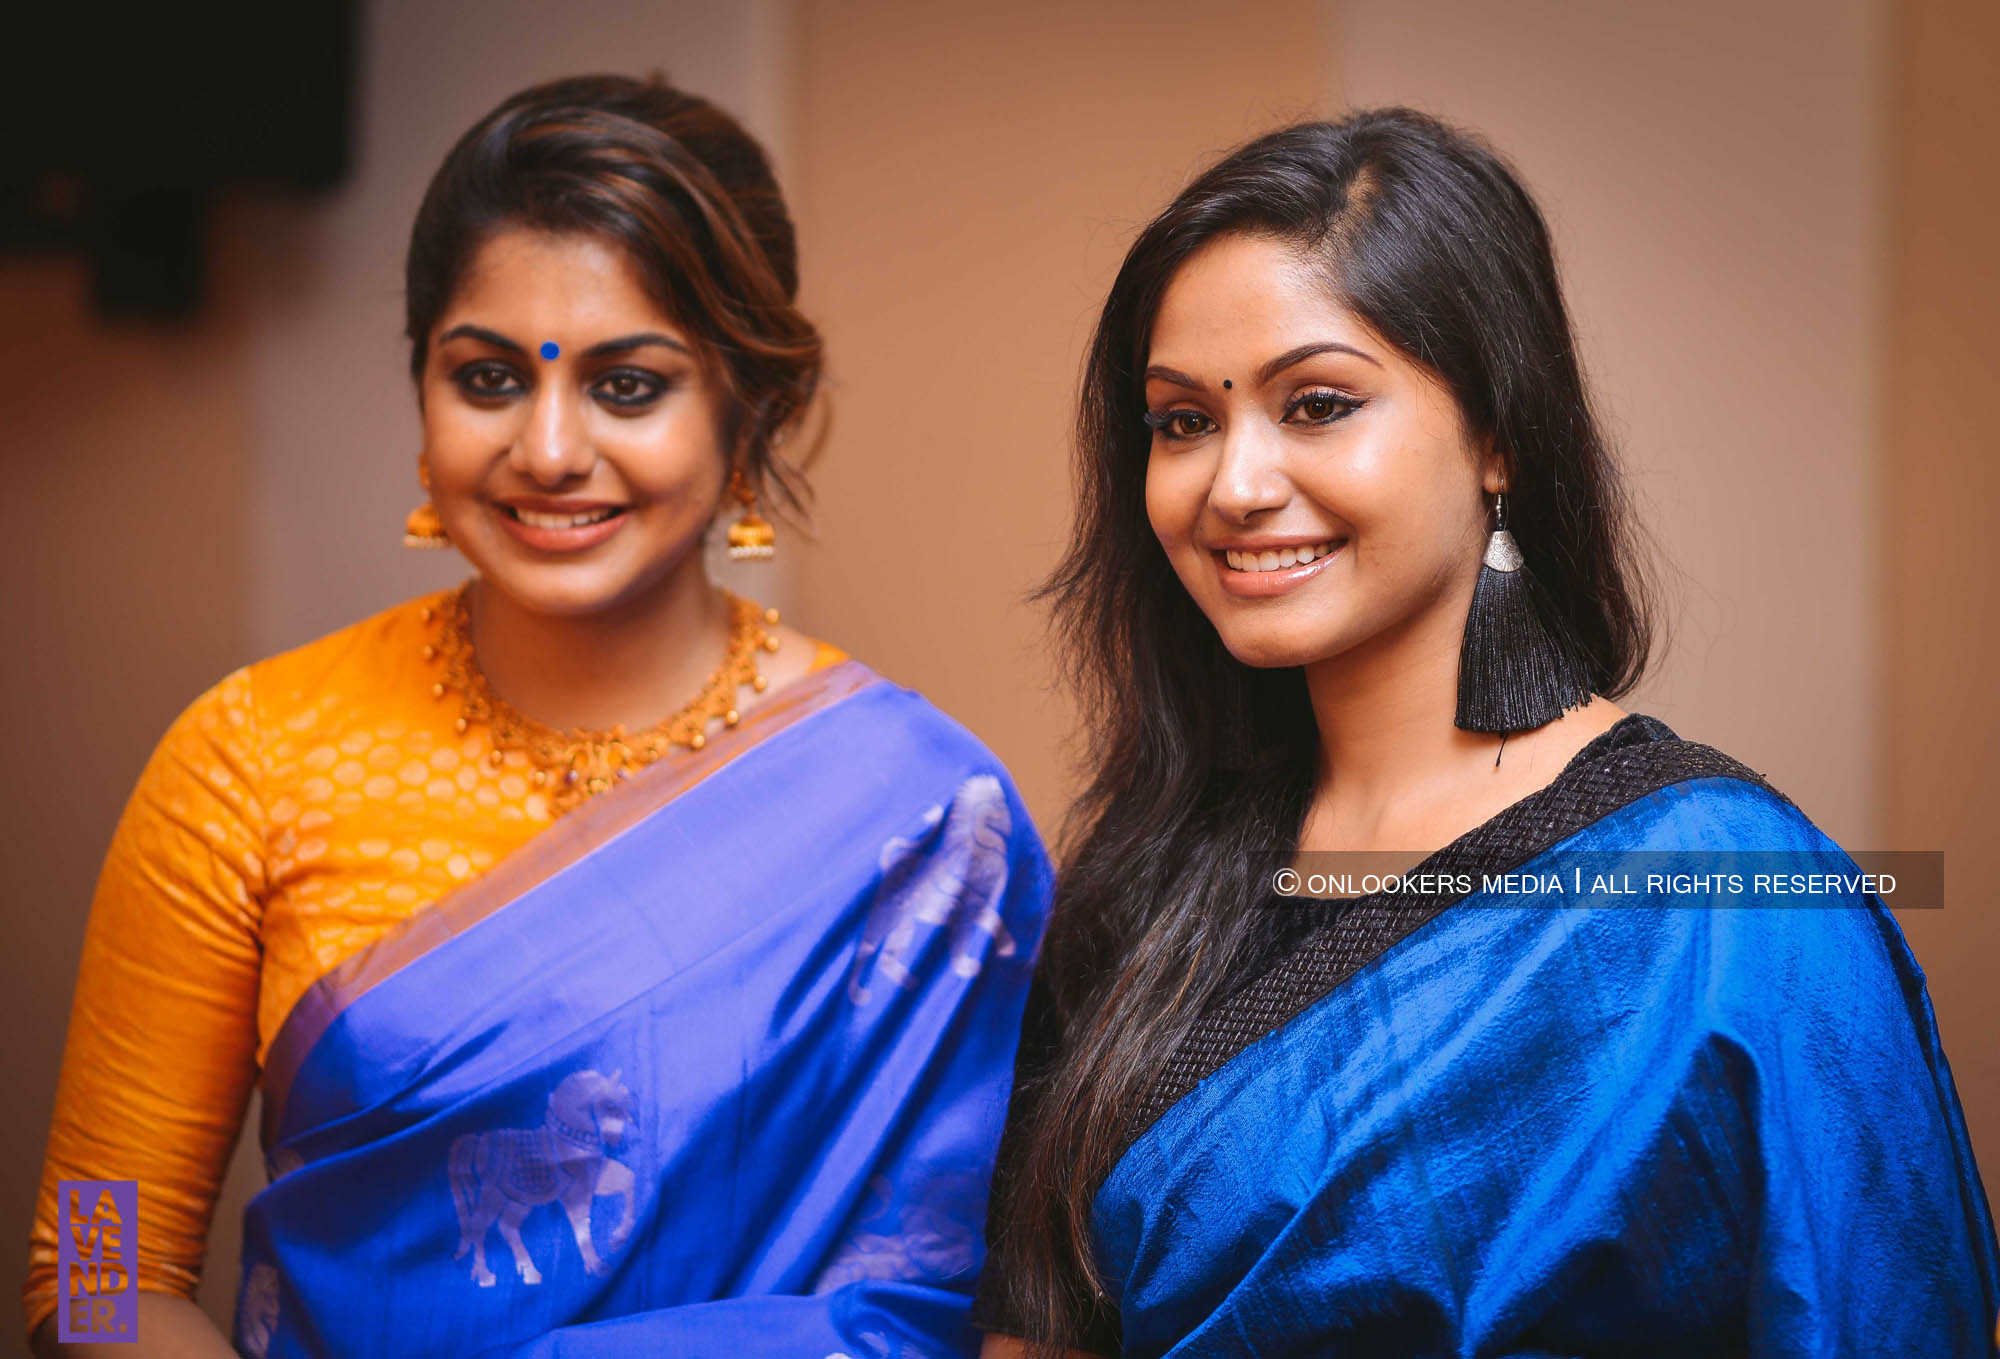 http://onlookersmedia.in/wp-content/uploads/2018/05/sreejith-vijay-wedding-stills-images-102.jpg